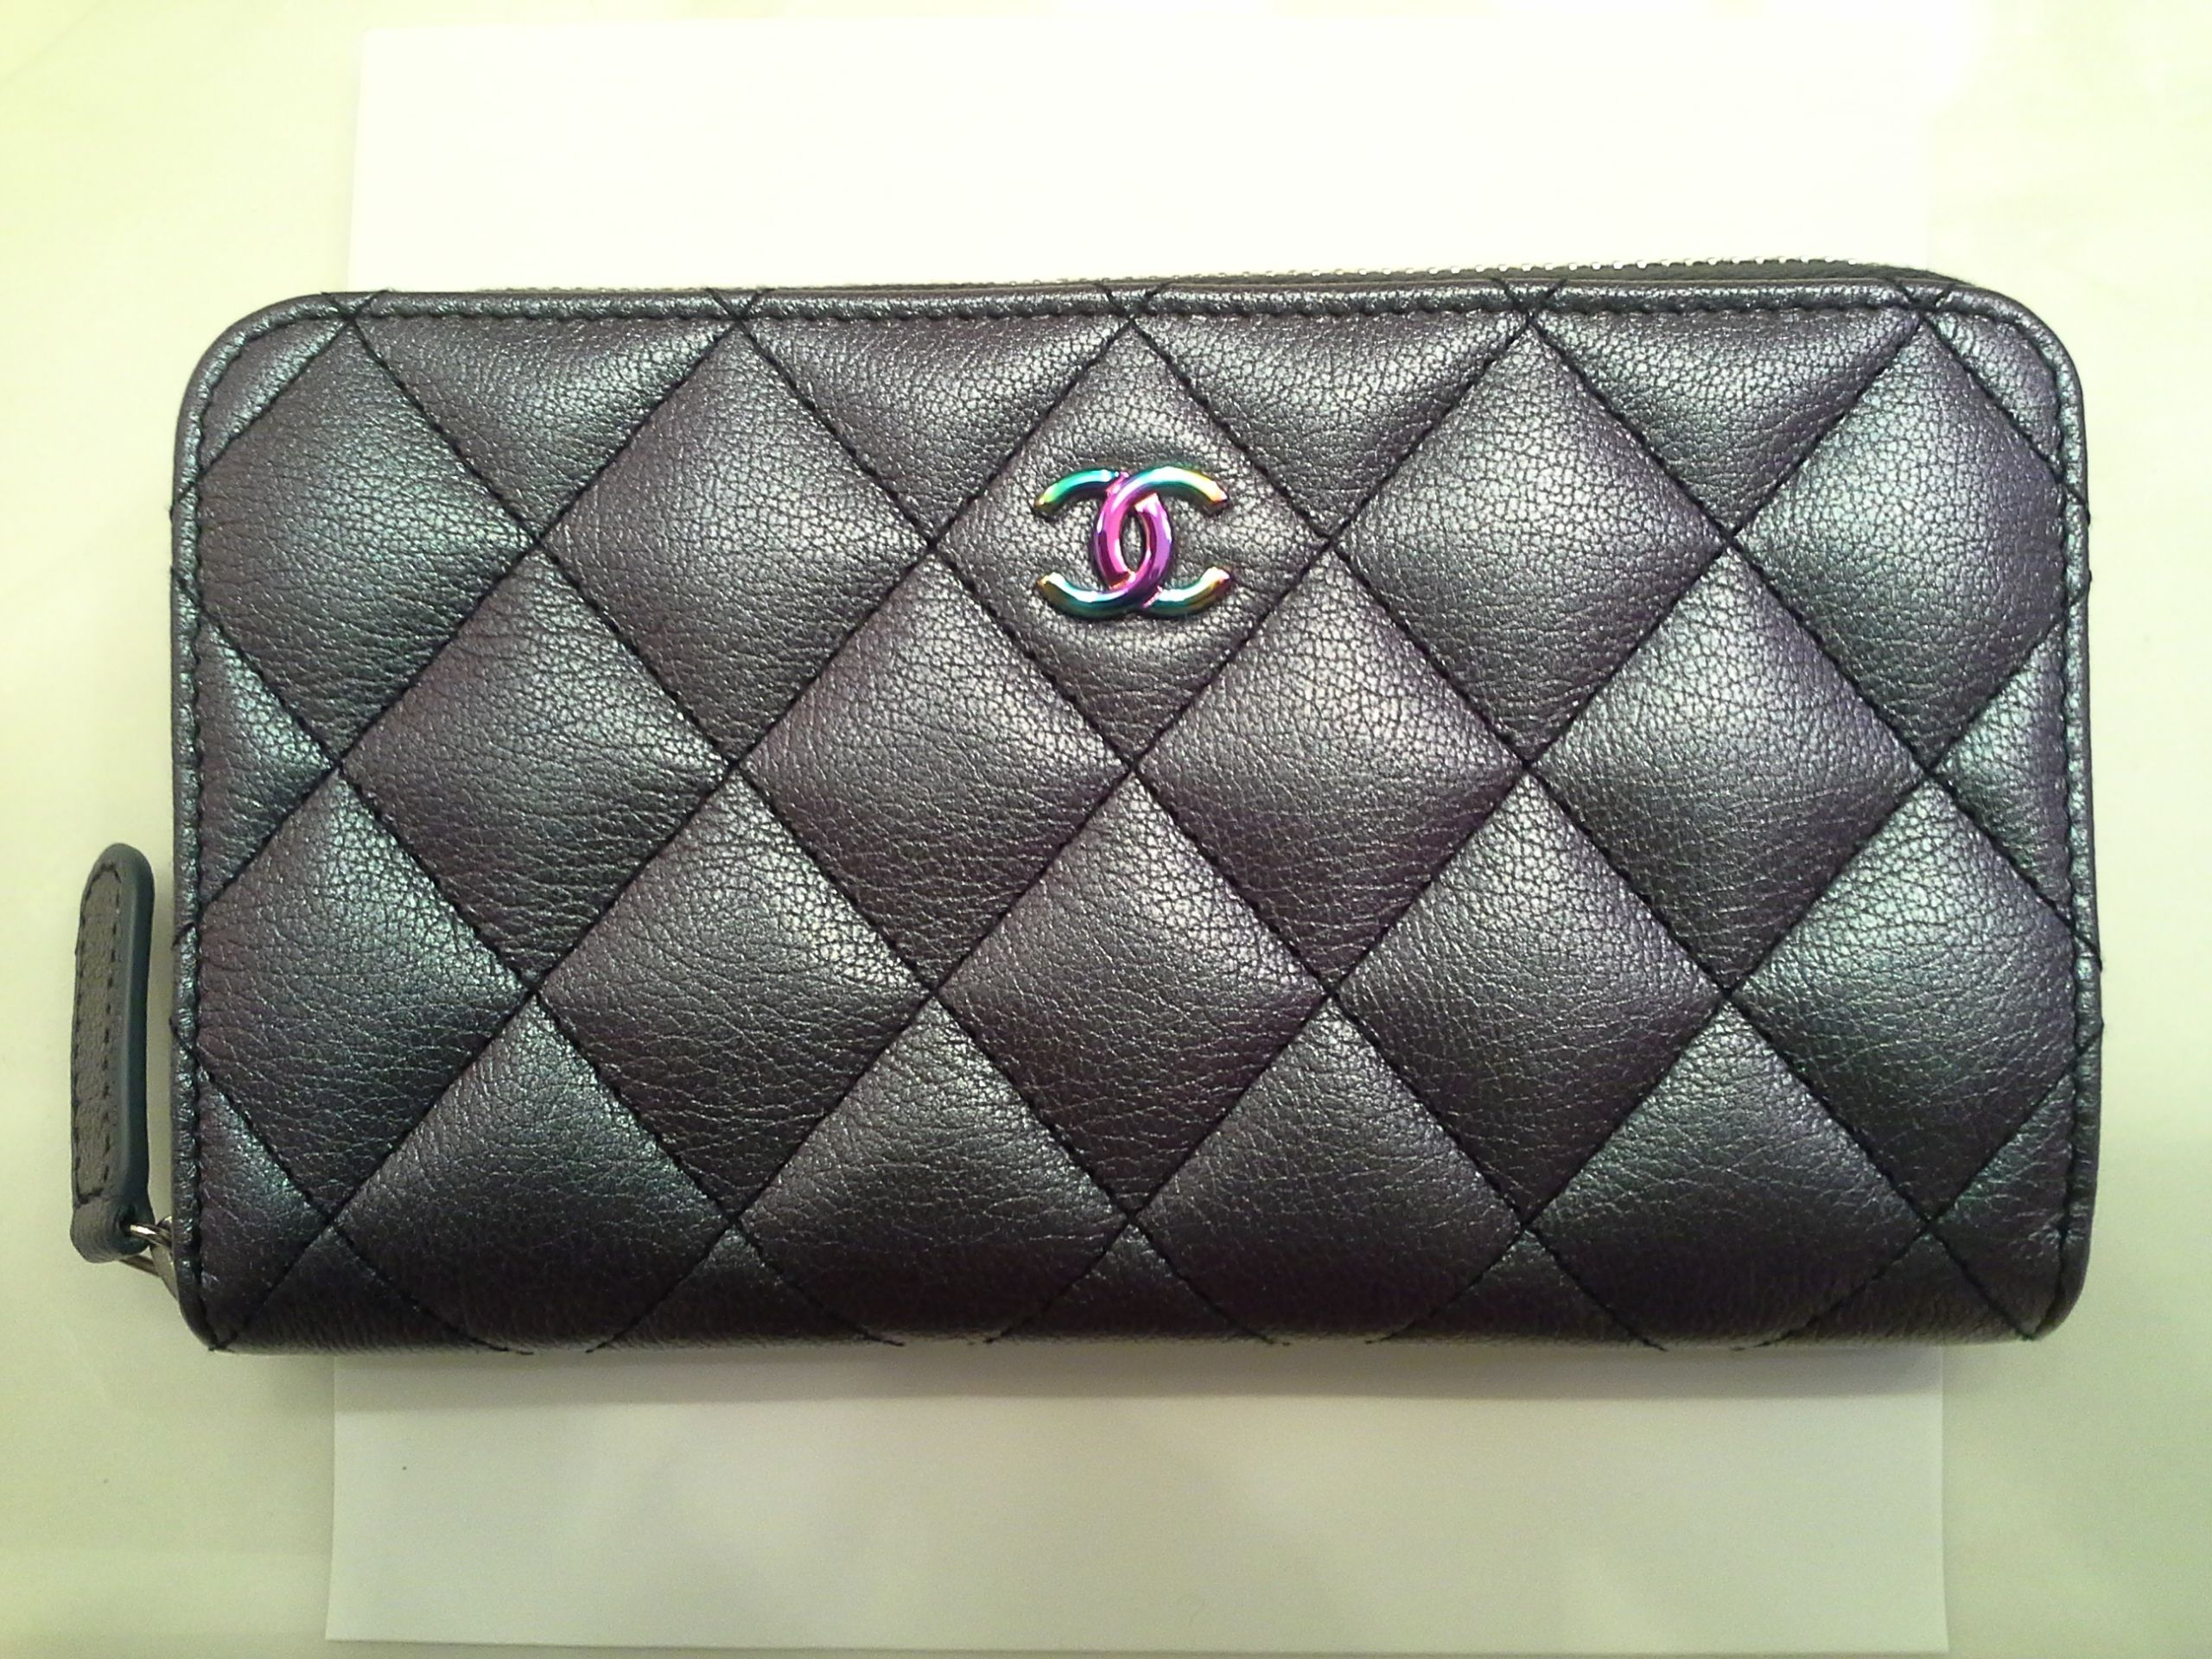 1663356766d6 Chanel Iridescent Small Zip Wallet | My Handbags | Chanel cruise ...